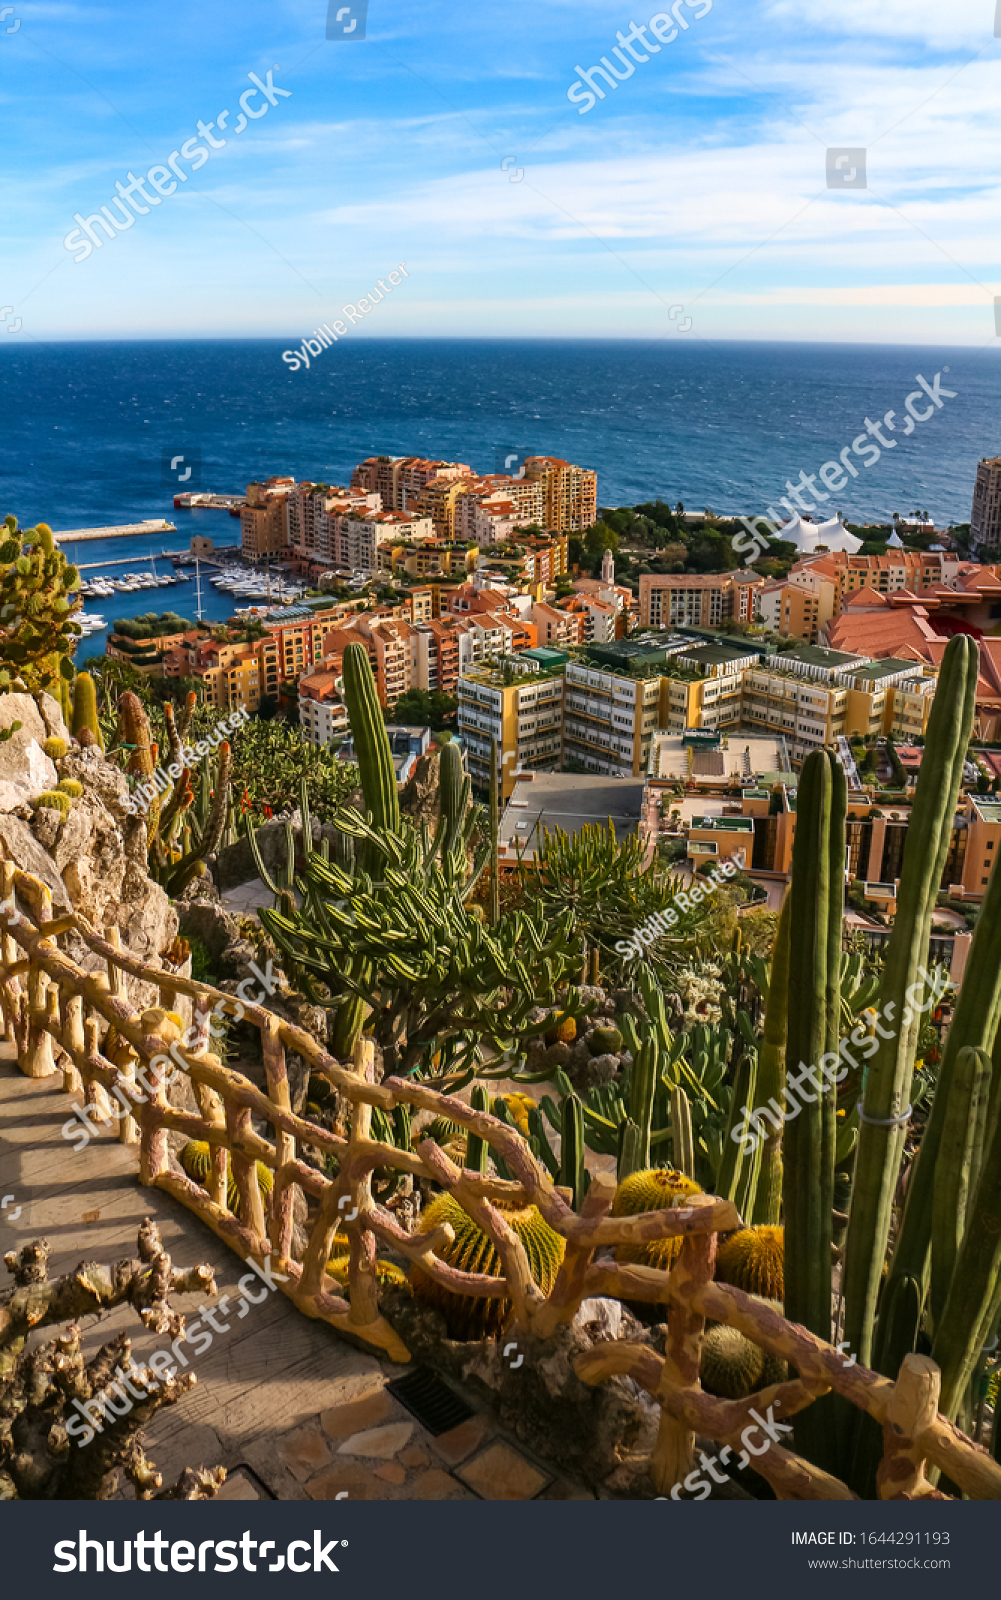 stock-photo-monaco-ville-monaco-january-